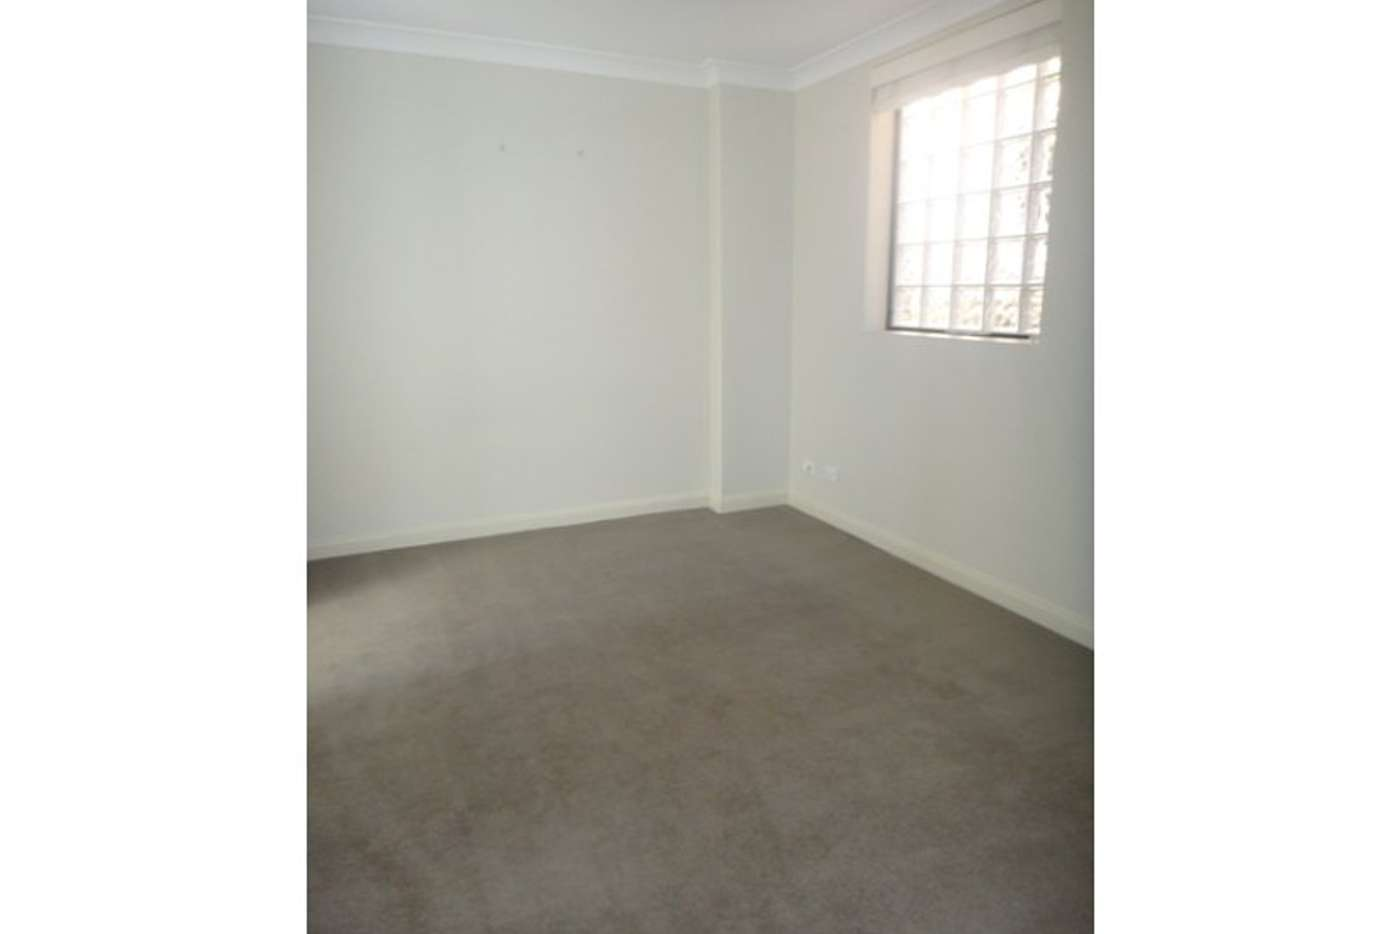 Seventh view of Homely apartment listing, 3/687 Anzac Parade, Maroubra NSW 2035